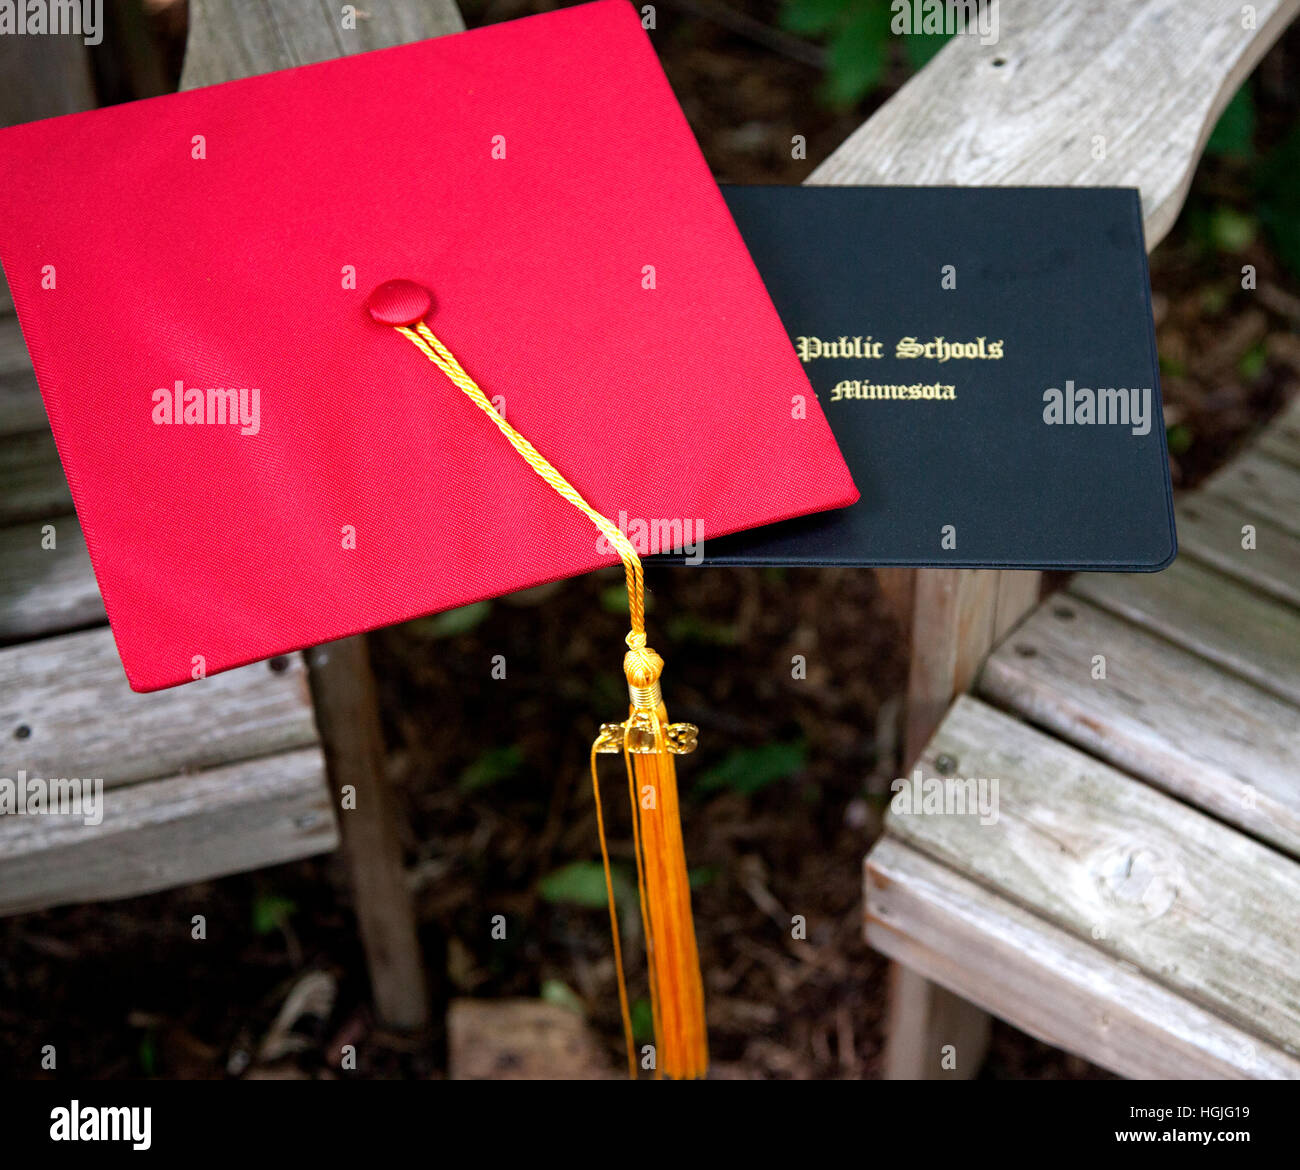 High school graduates red cap with gold tassel and diploma folder displayed at graduation party. St Paul Minnesota - Stock Image